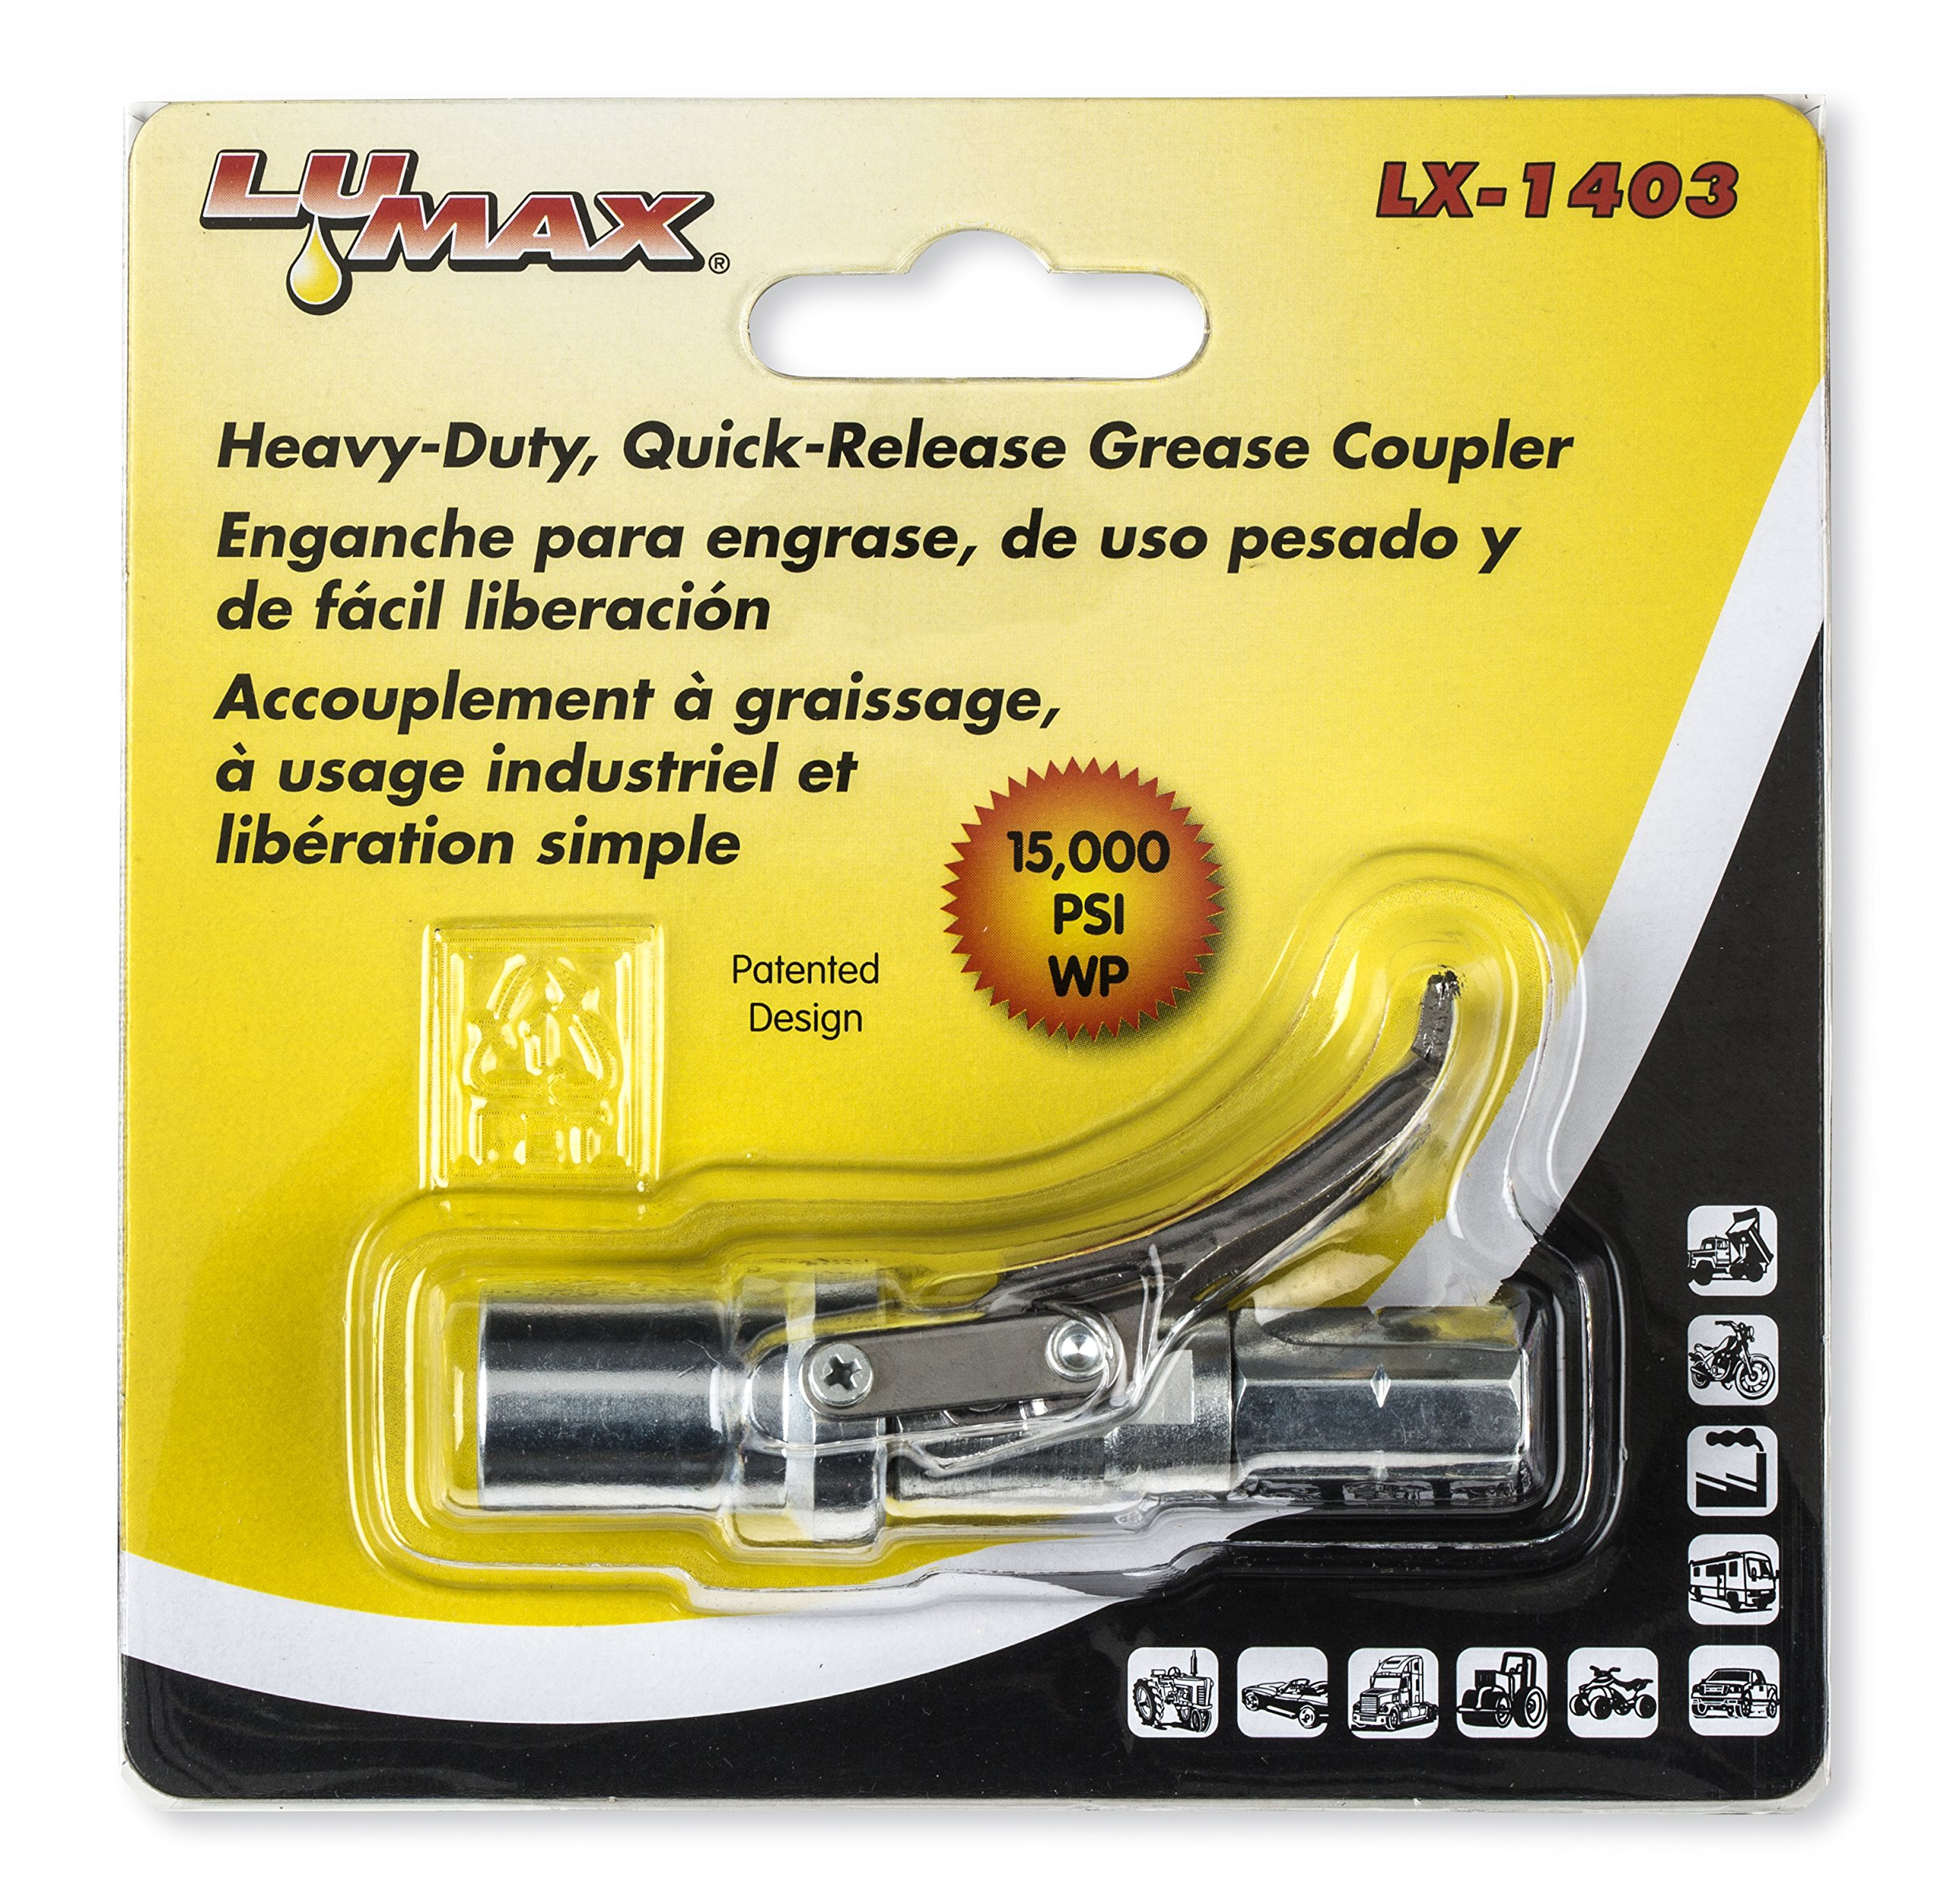 Lumax LX-1403 Silver Heavy-Duty Quick Release Grease Coupler, 1/8'' NPT by Lumax (Image #4)